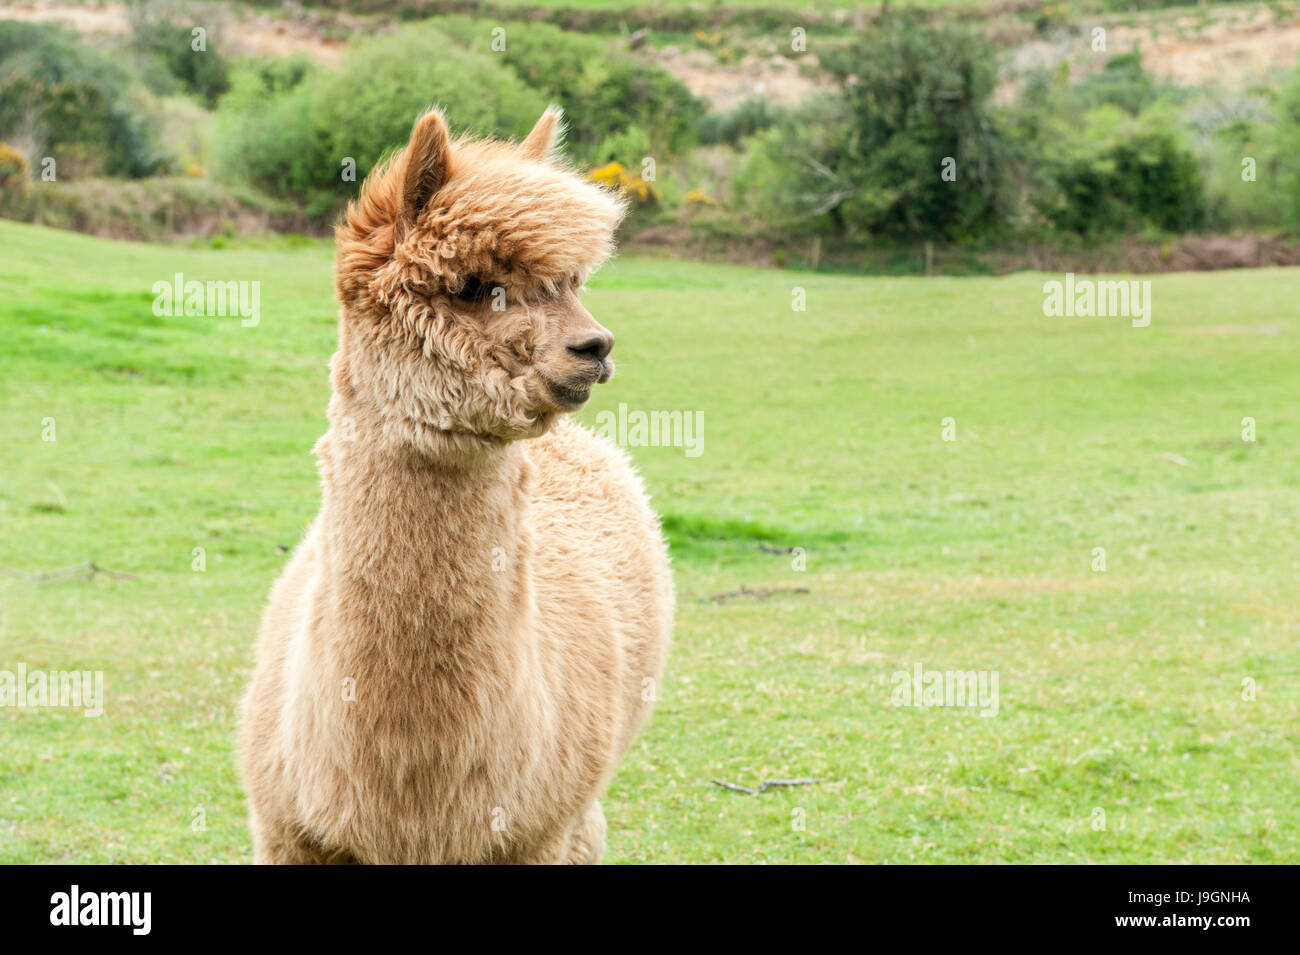 Alpaca Lama Pacos Vicugna Pacos in a field with copy space. - Stock Image